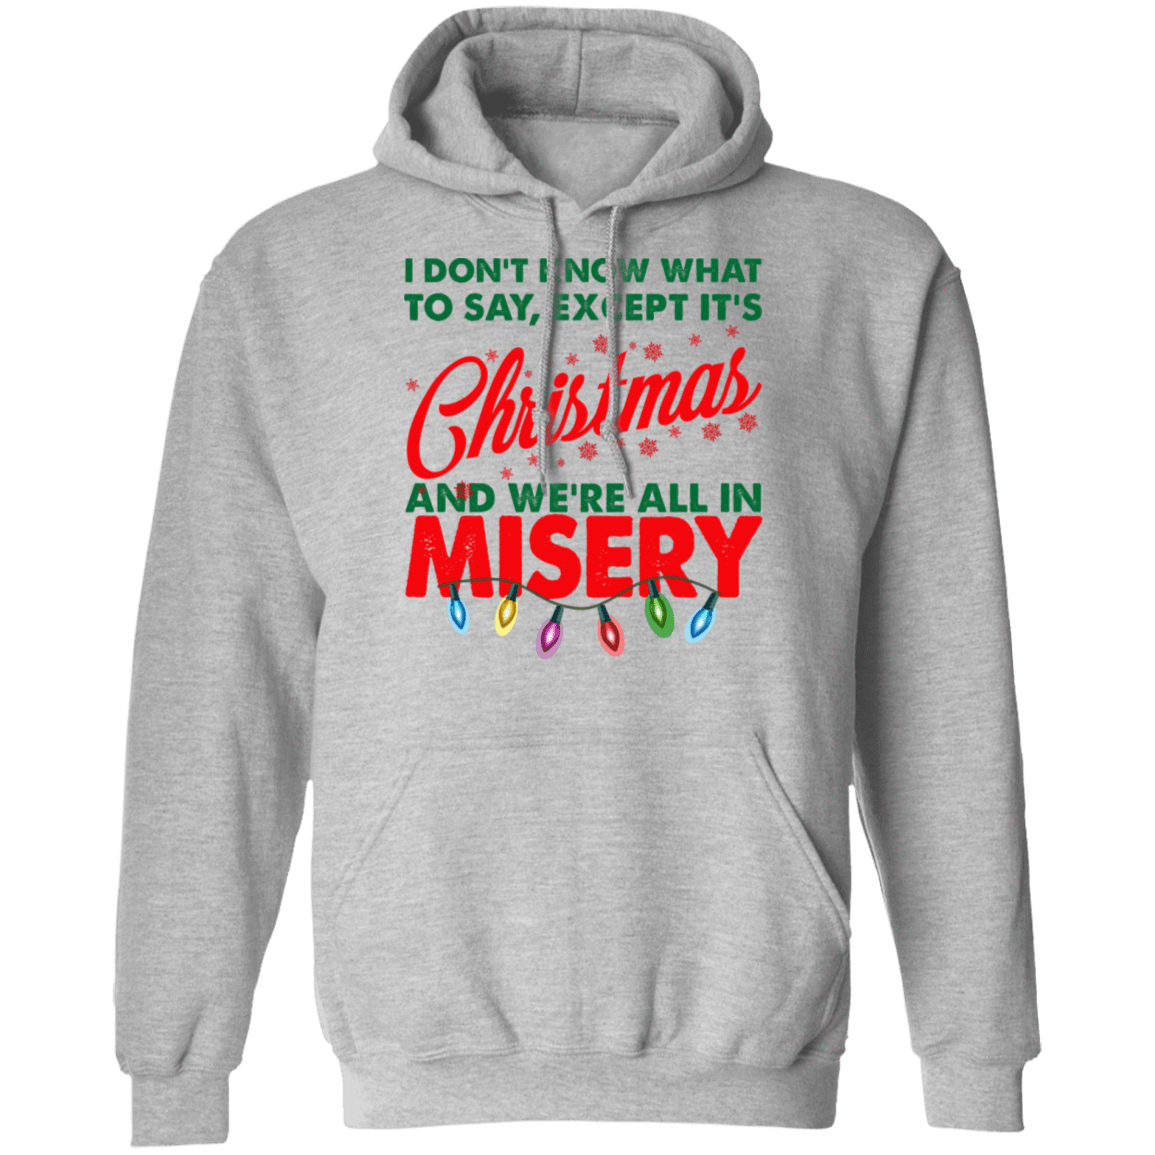 I Don't Know What To Say Except It's Christmas And We're All In Misery T-Shirts, Hoodies, Tank 541-4741-81138428-23111 - Tee Ript